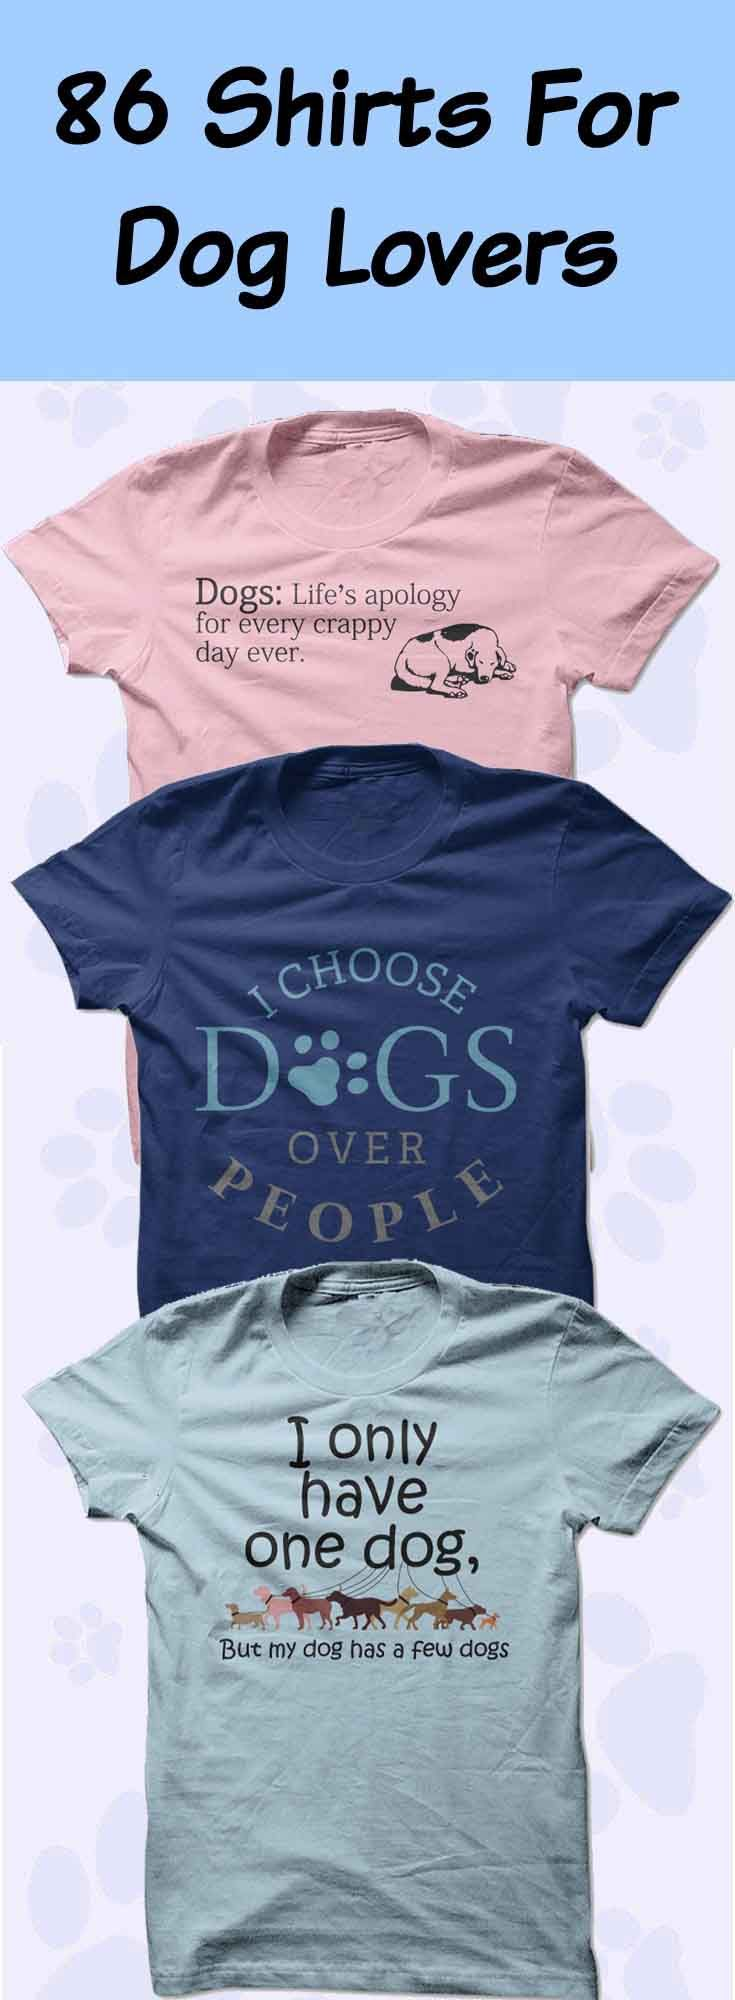 86 shirts for dog lovers…Click to see here>> https://www.sunfrog.com/DogNamesAndMore/Dog-T-Shirt-and-Hoodie-Collection